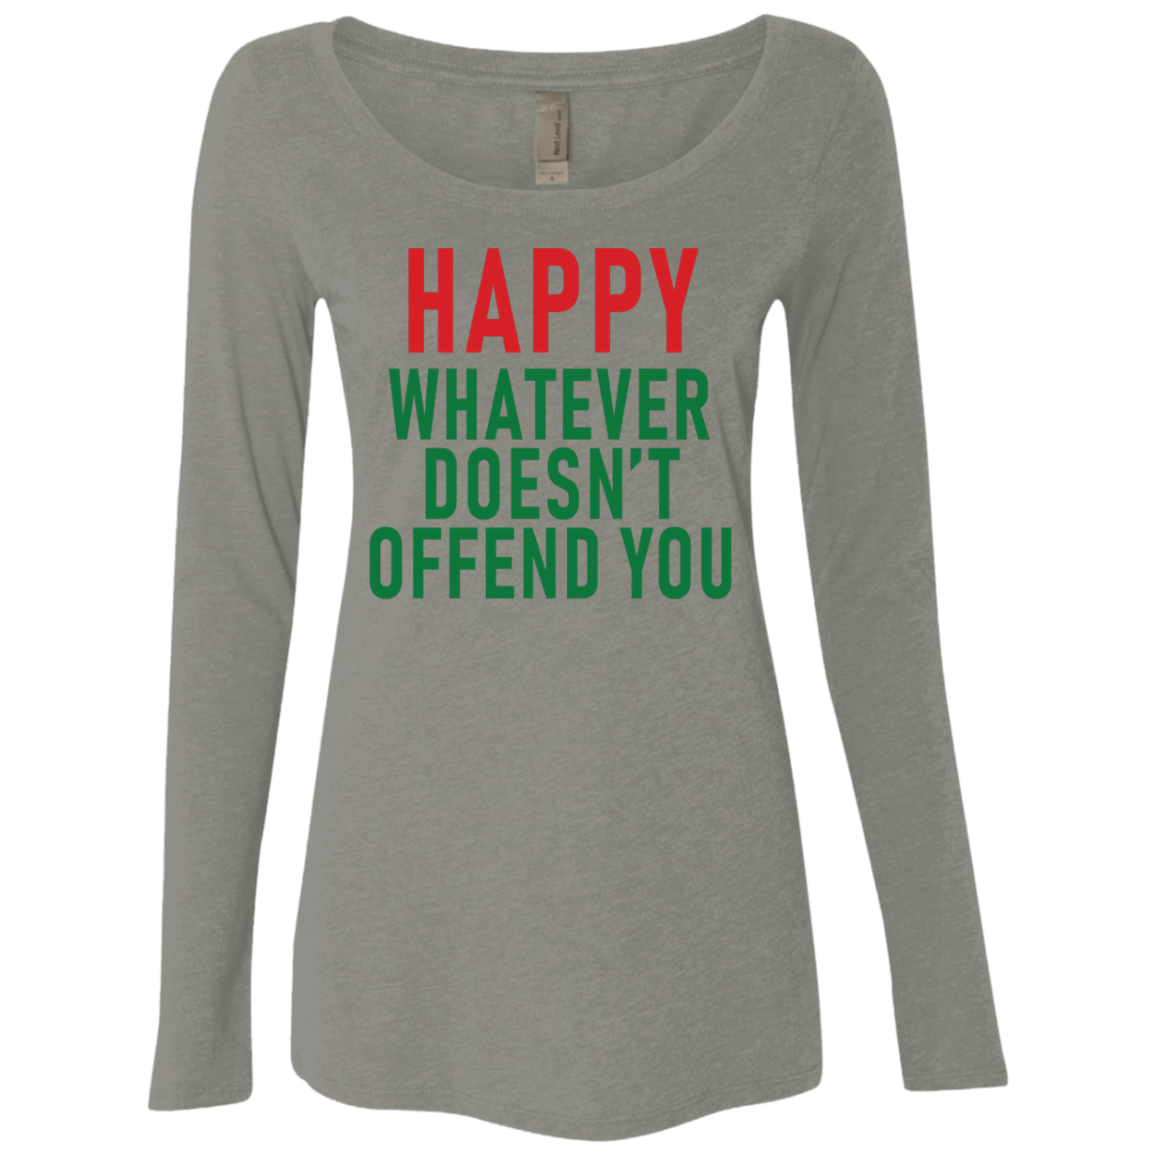 Happy Whatever Doesn't Offend You Women's Long Sleeve Tee